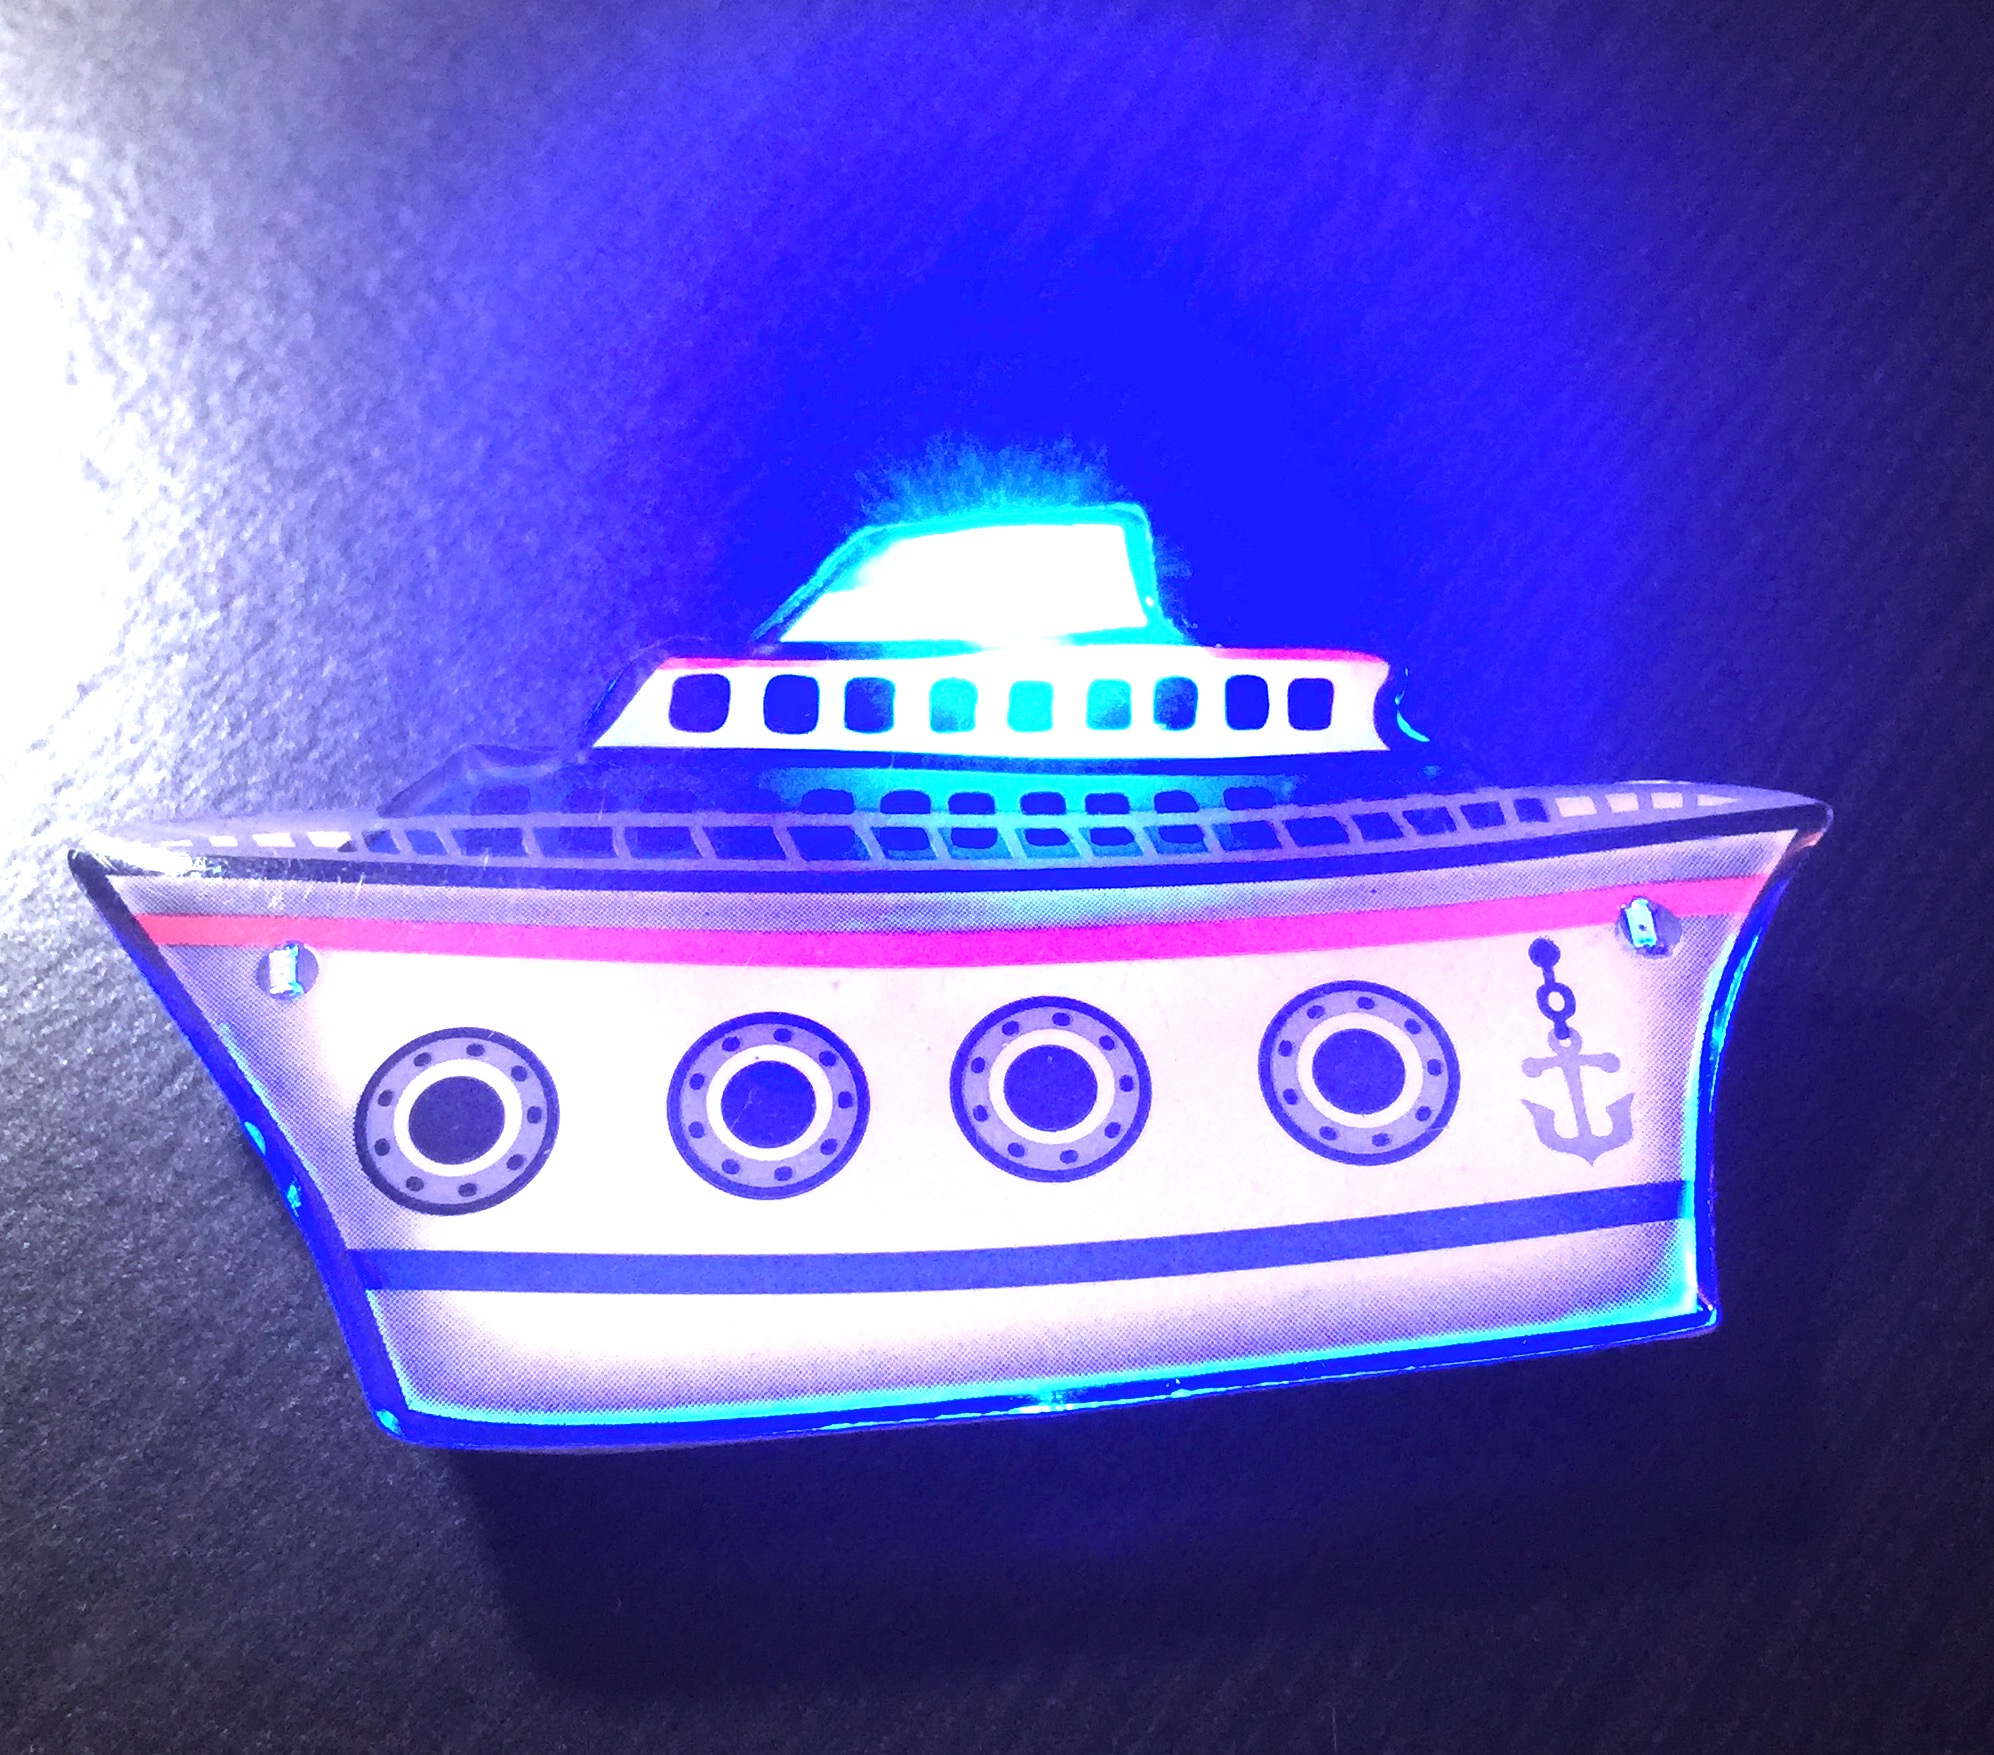 lapel pin of blinking ship